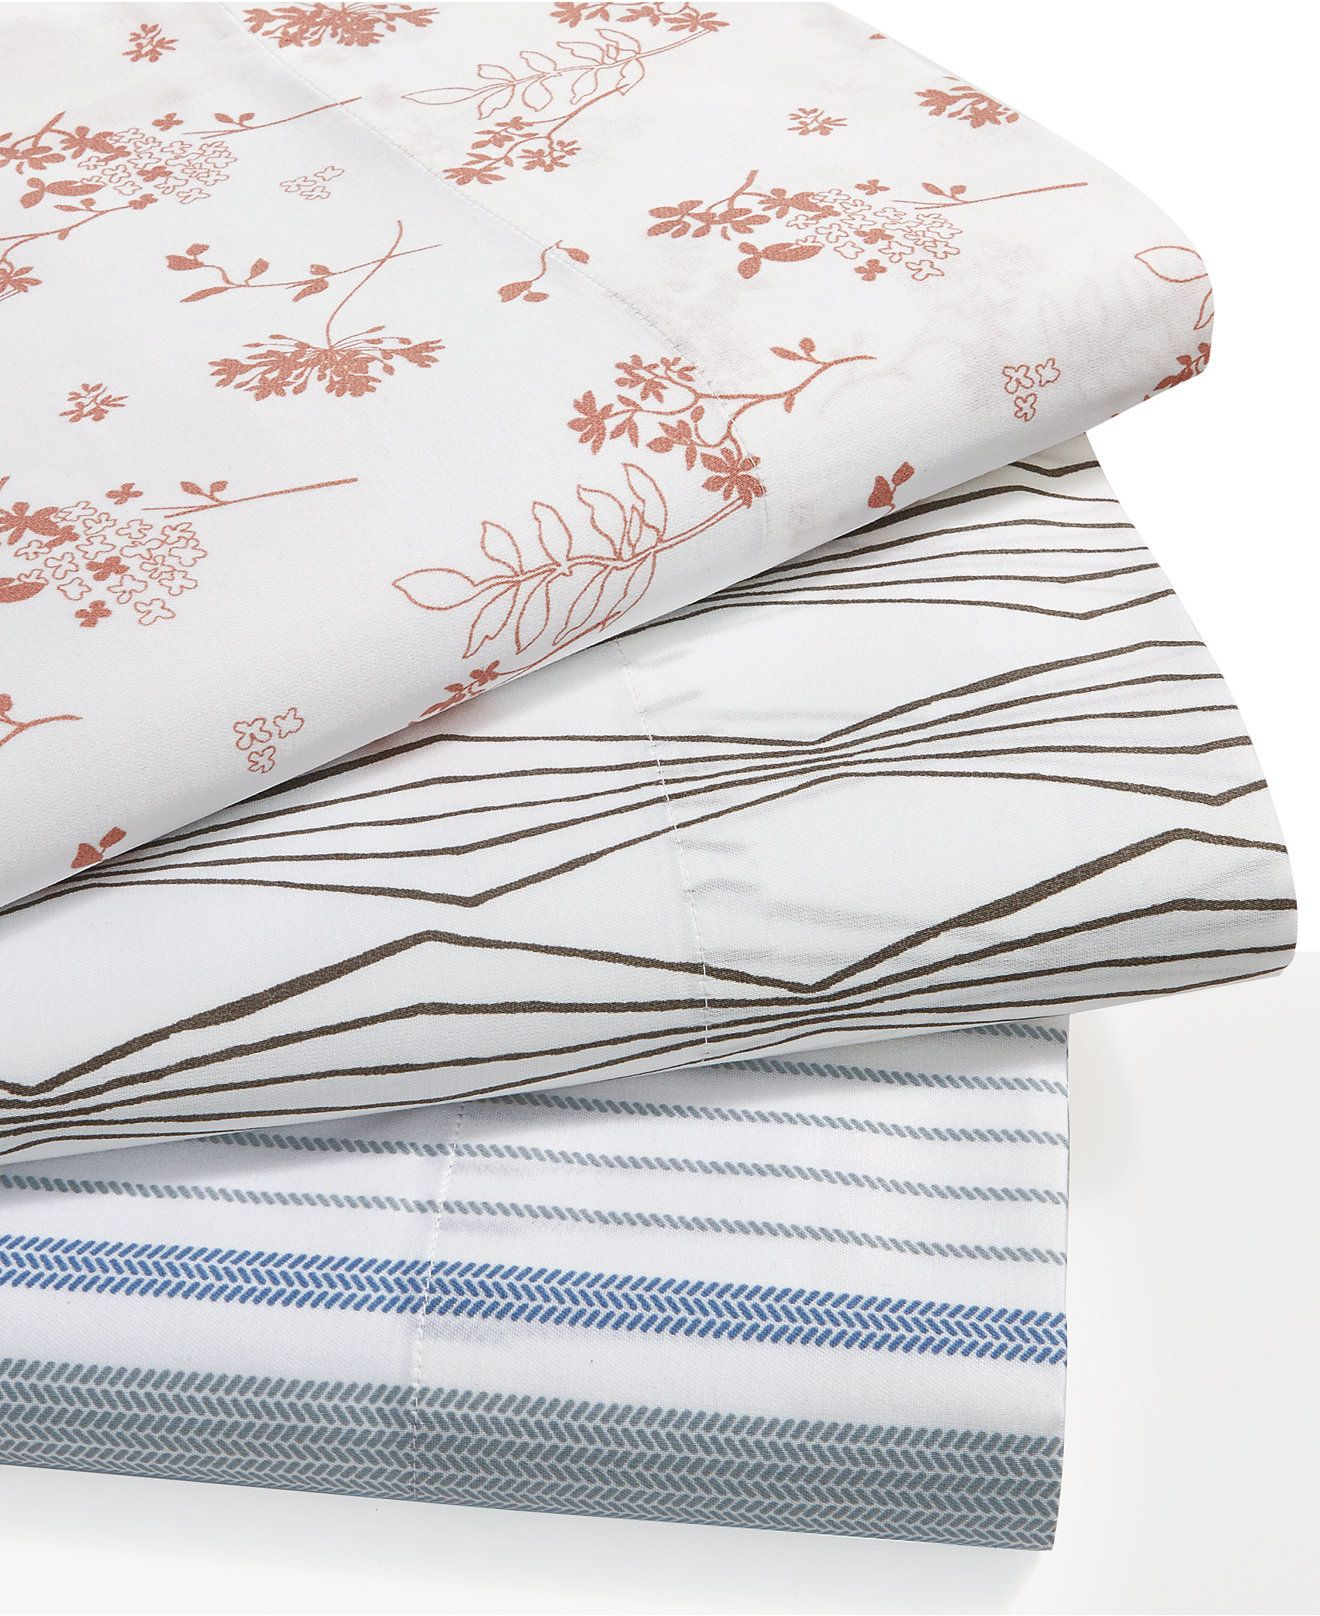 Printed Sheet Sets Organic Cotton 300 Thread Count Printed Sheet Sets Gots Certified